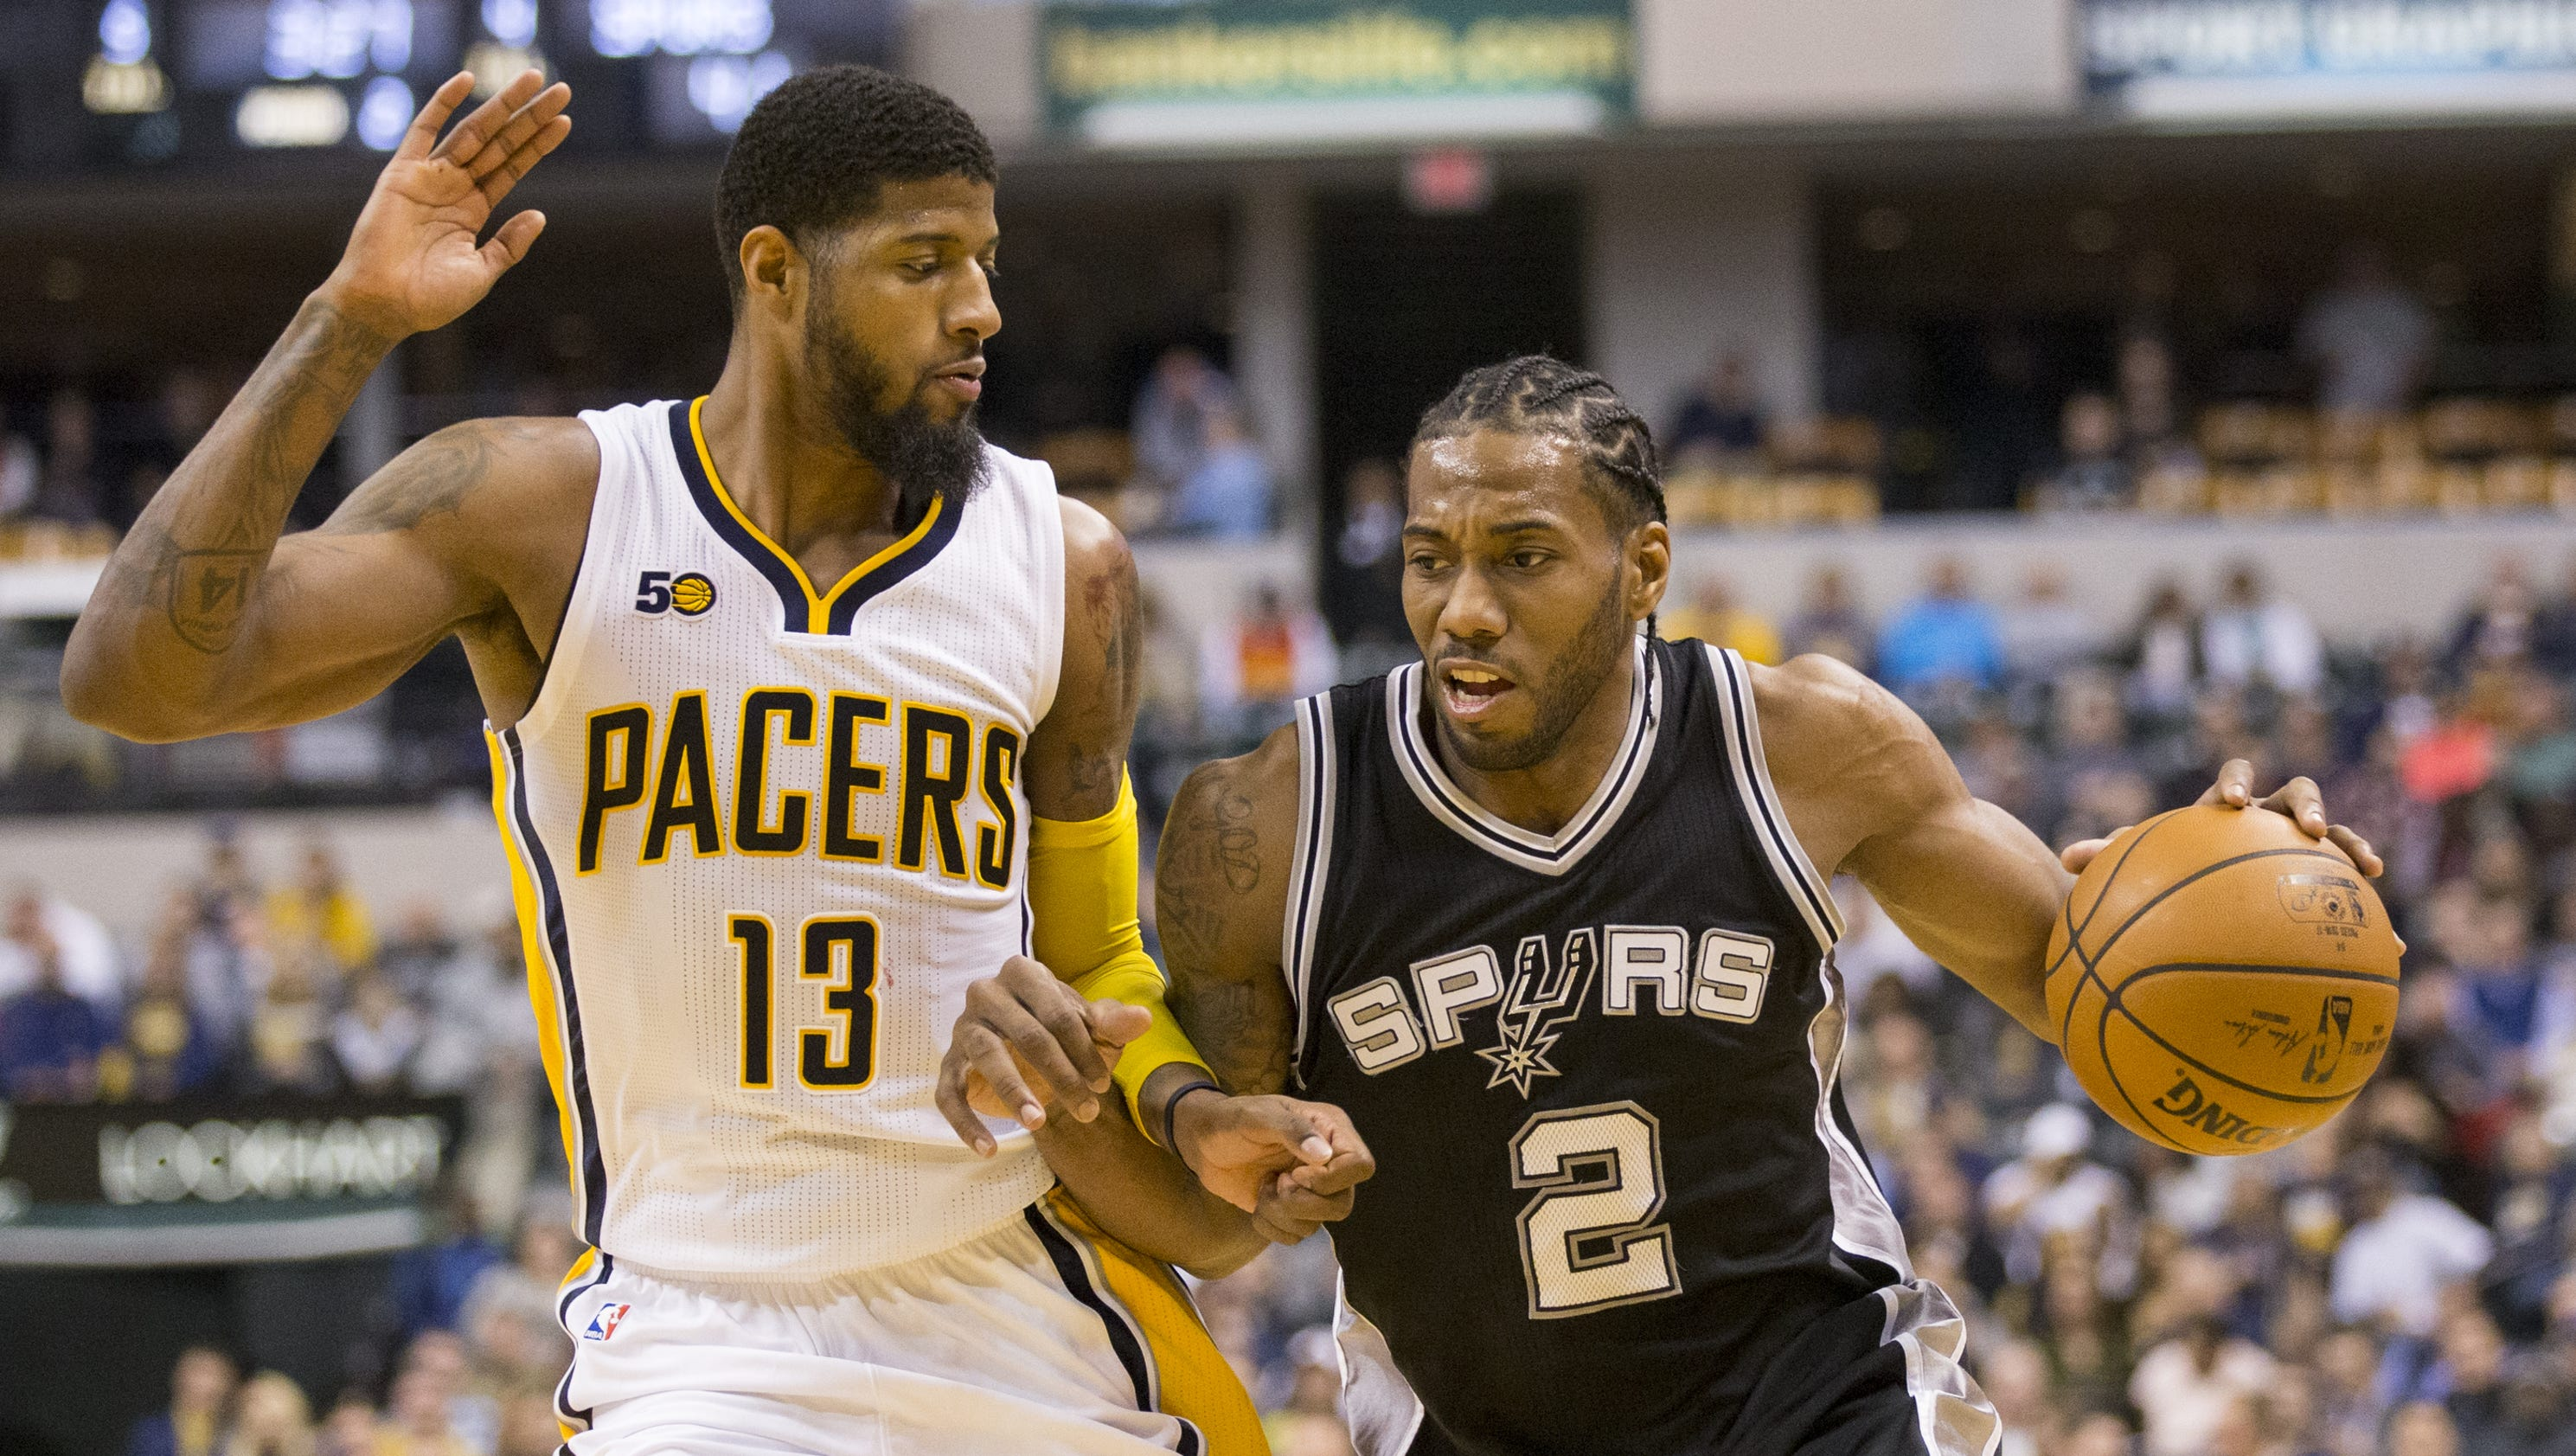 636226139797399809-pacersspurs-rs-001